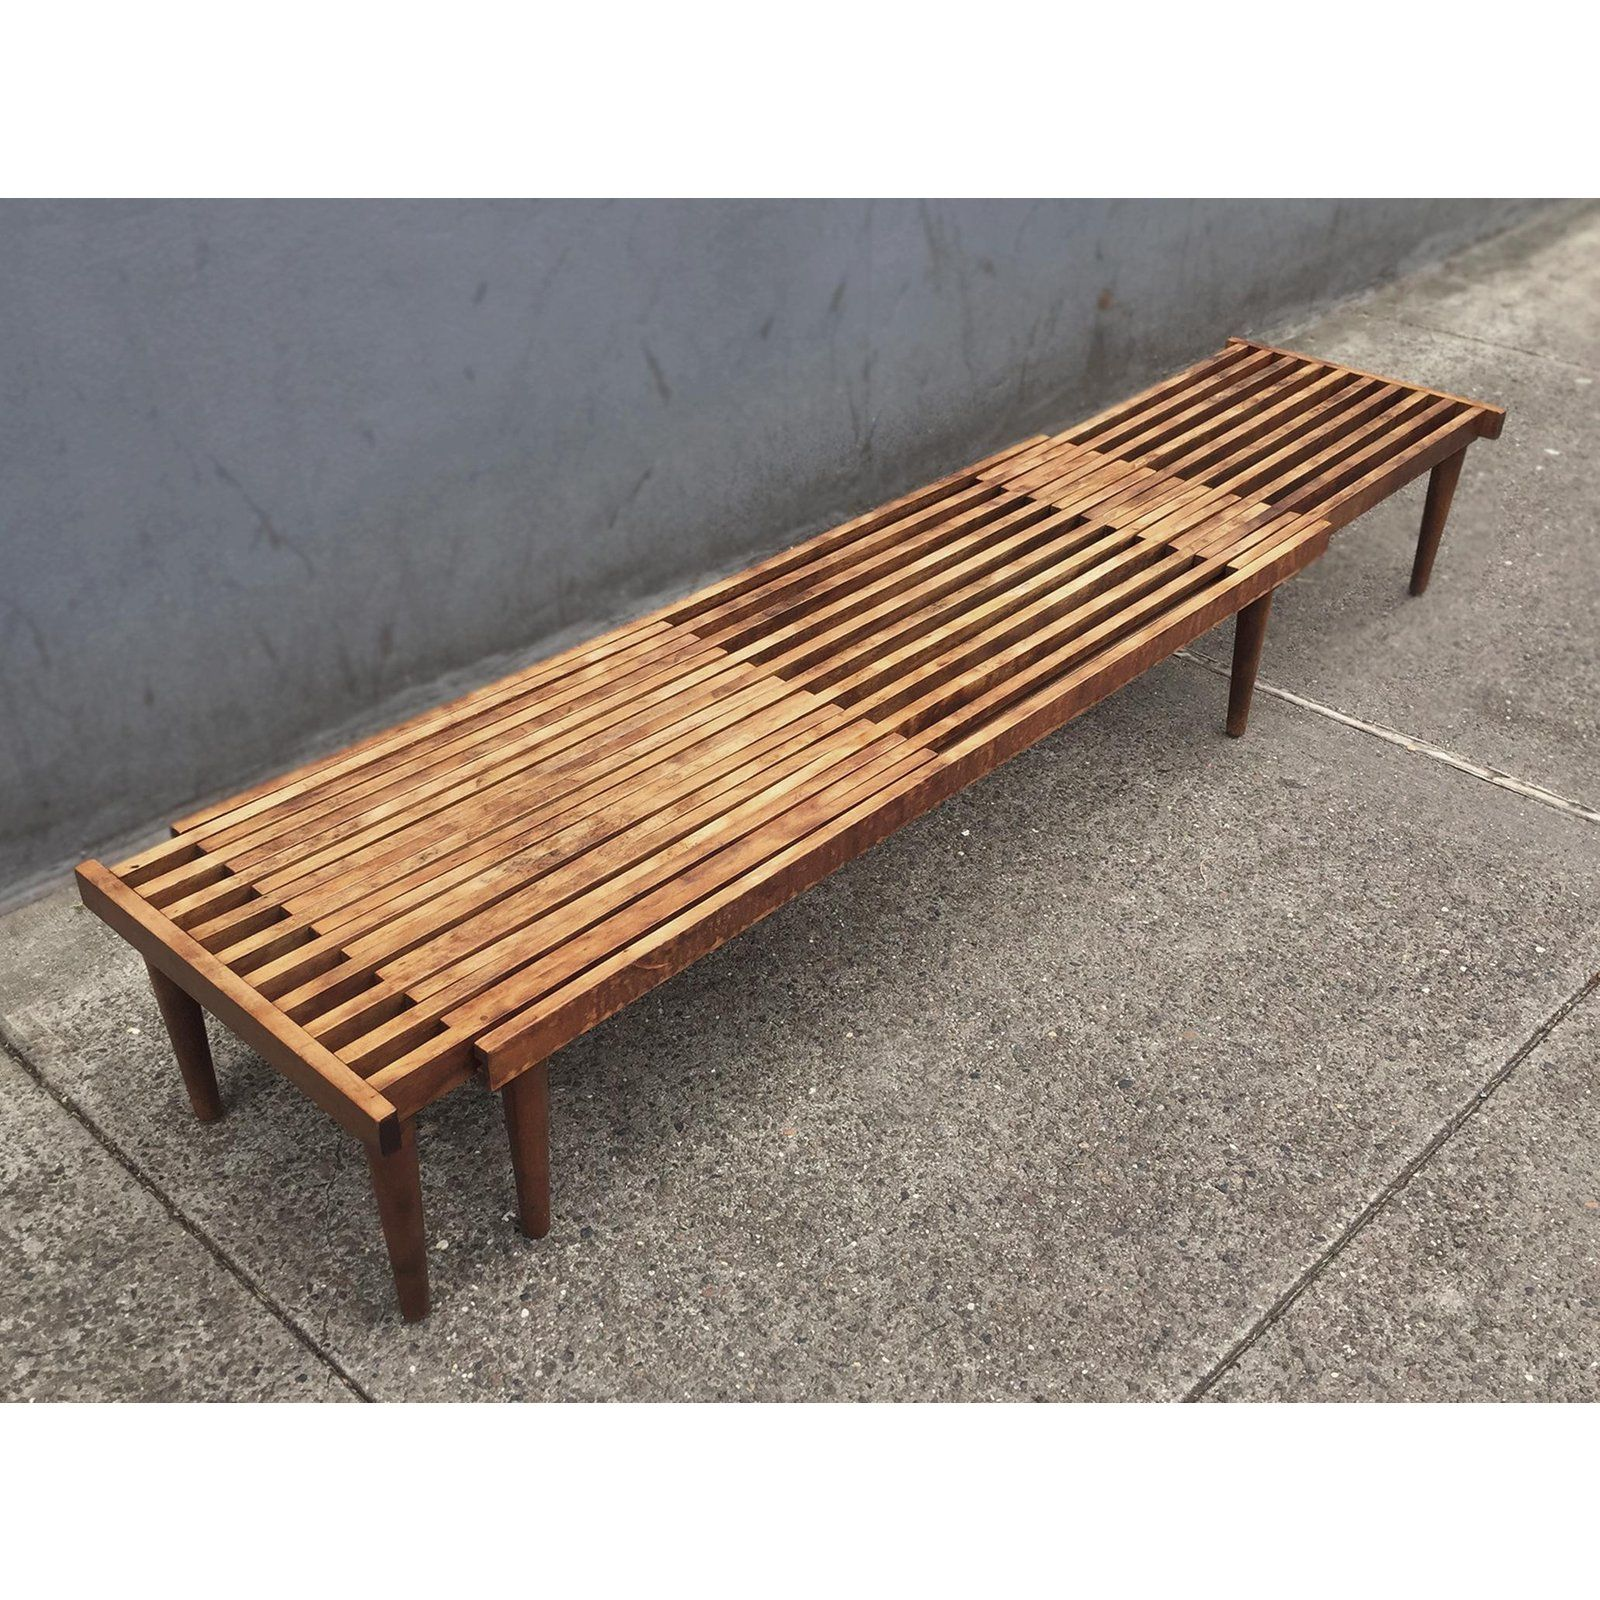 Brown Saltman Mid Century Modern Extending Slatted Bench Table By John Keal For Sale Image 4 Of 13 Outdoor Bench Table Bench Table Table